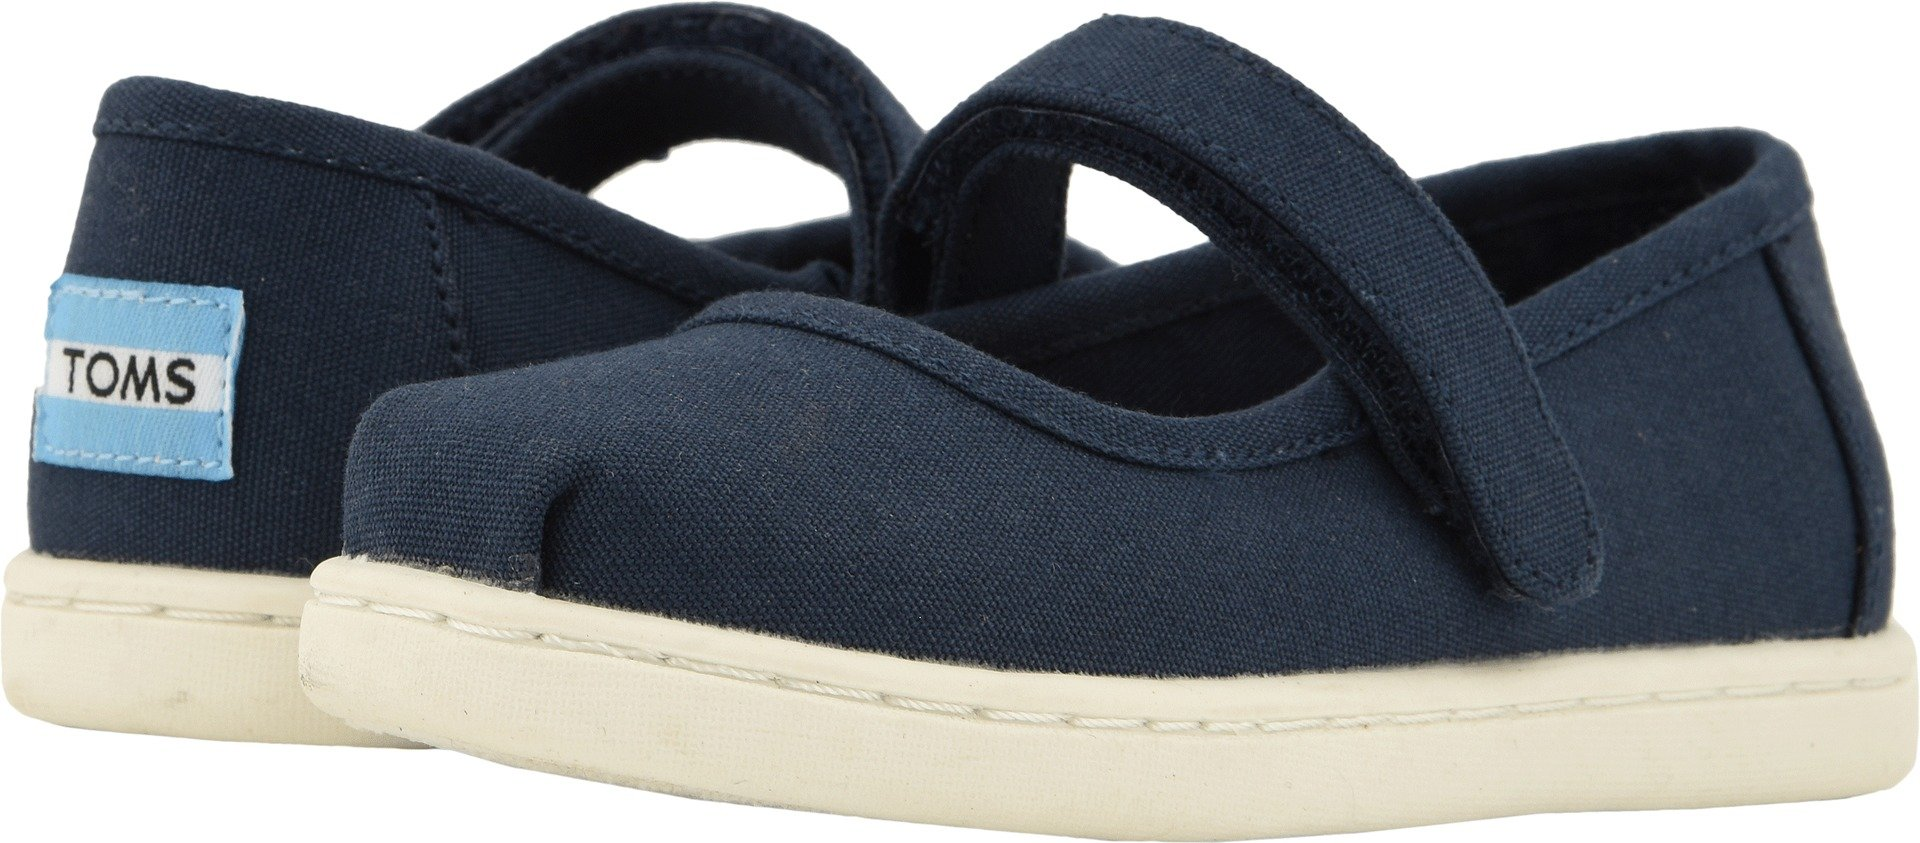 TOMS Kids Baby Girl's Mary Jane (Infant/Toddler/Little Kid) Navy Canvas 9 M US Toddler